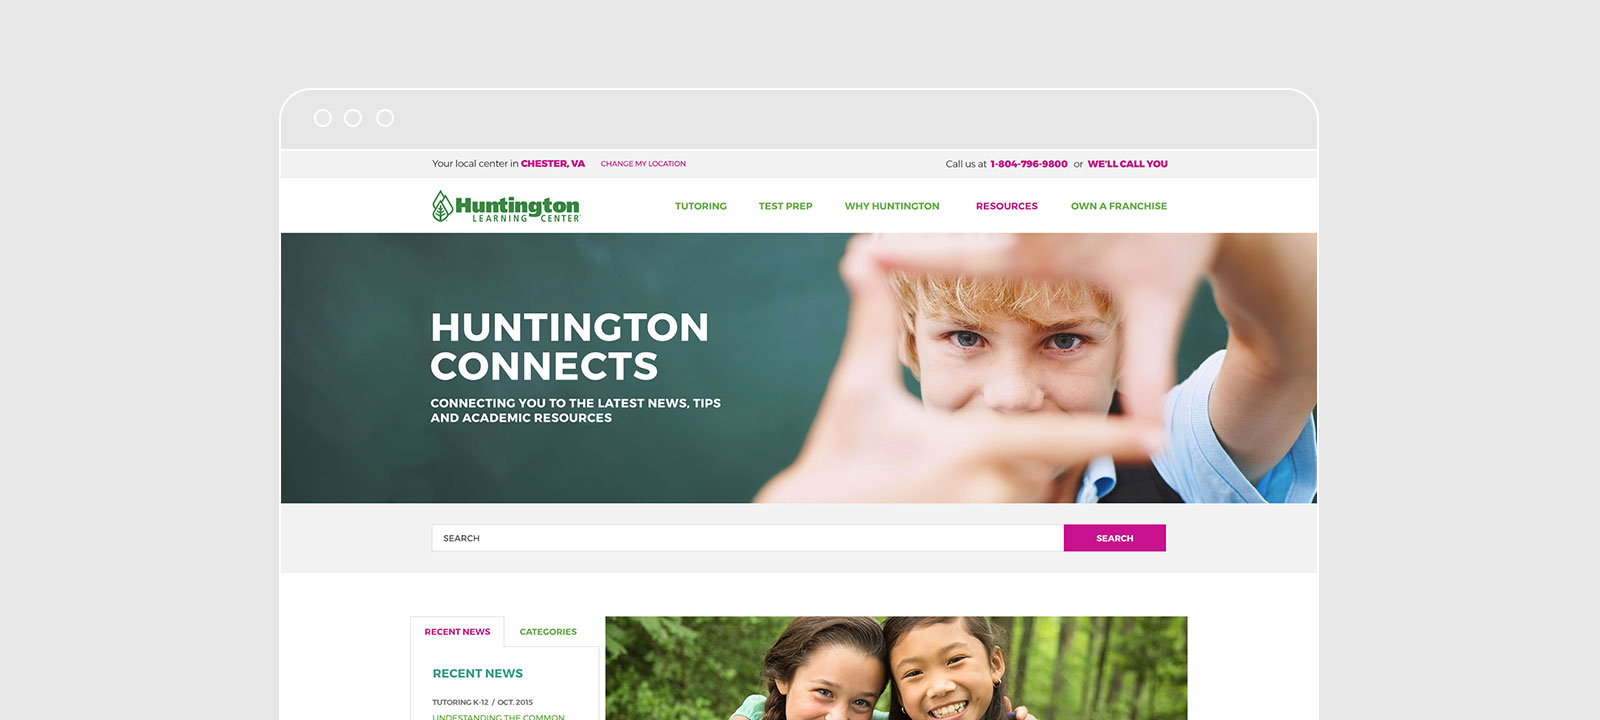 Huntingtonhelps.com